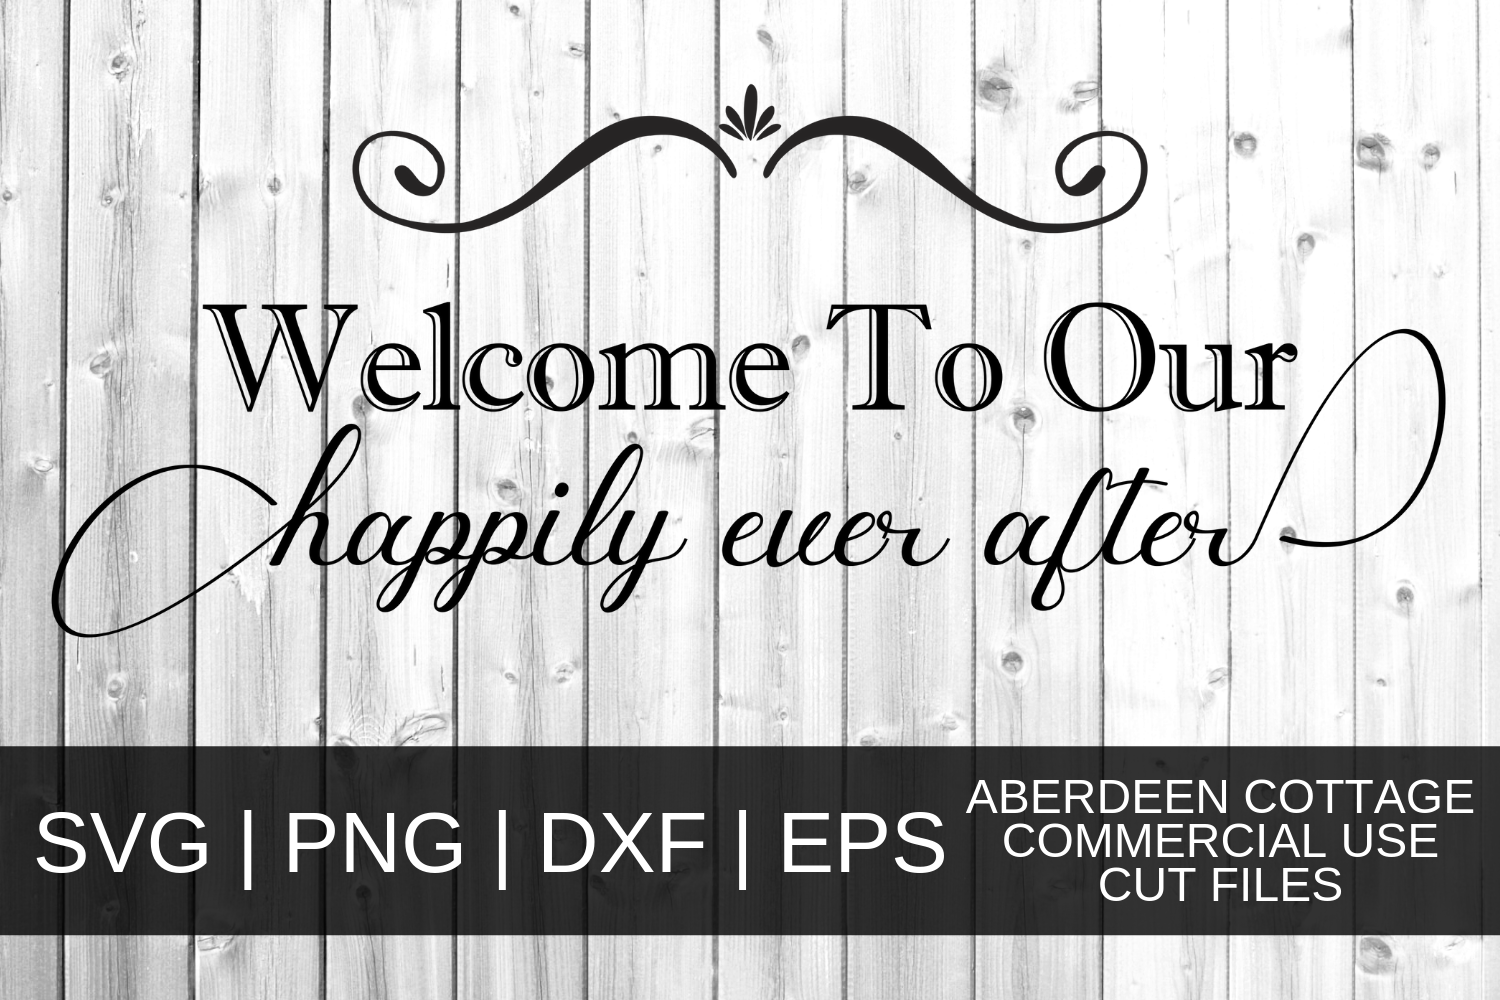 Welcome To Our Happily Ever After Svg Png Dxf Eps Design 215577 Cut Files Design Bundles